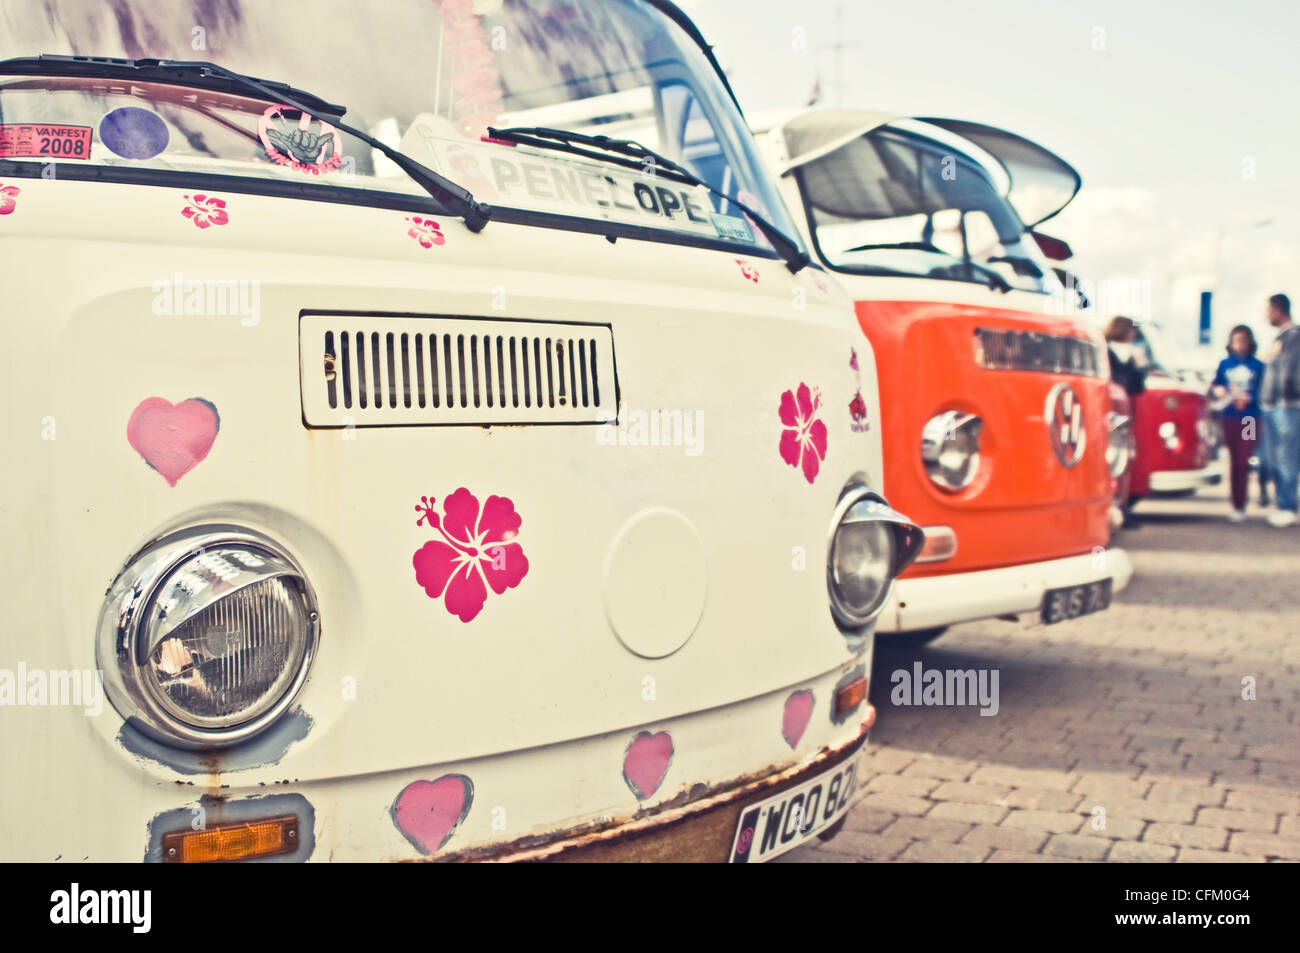 A classic VW campervan show - Stock Image